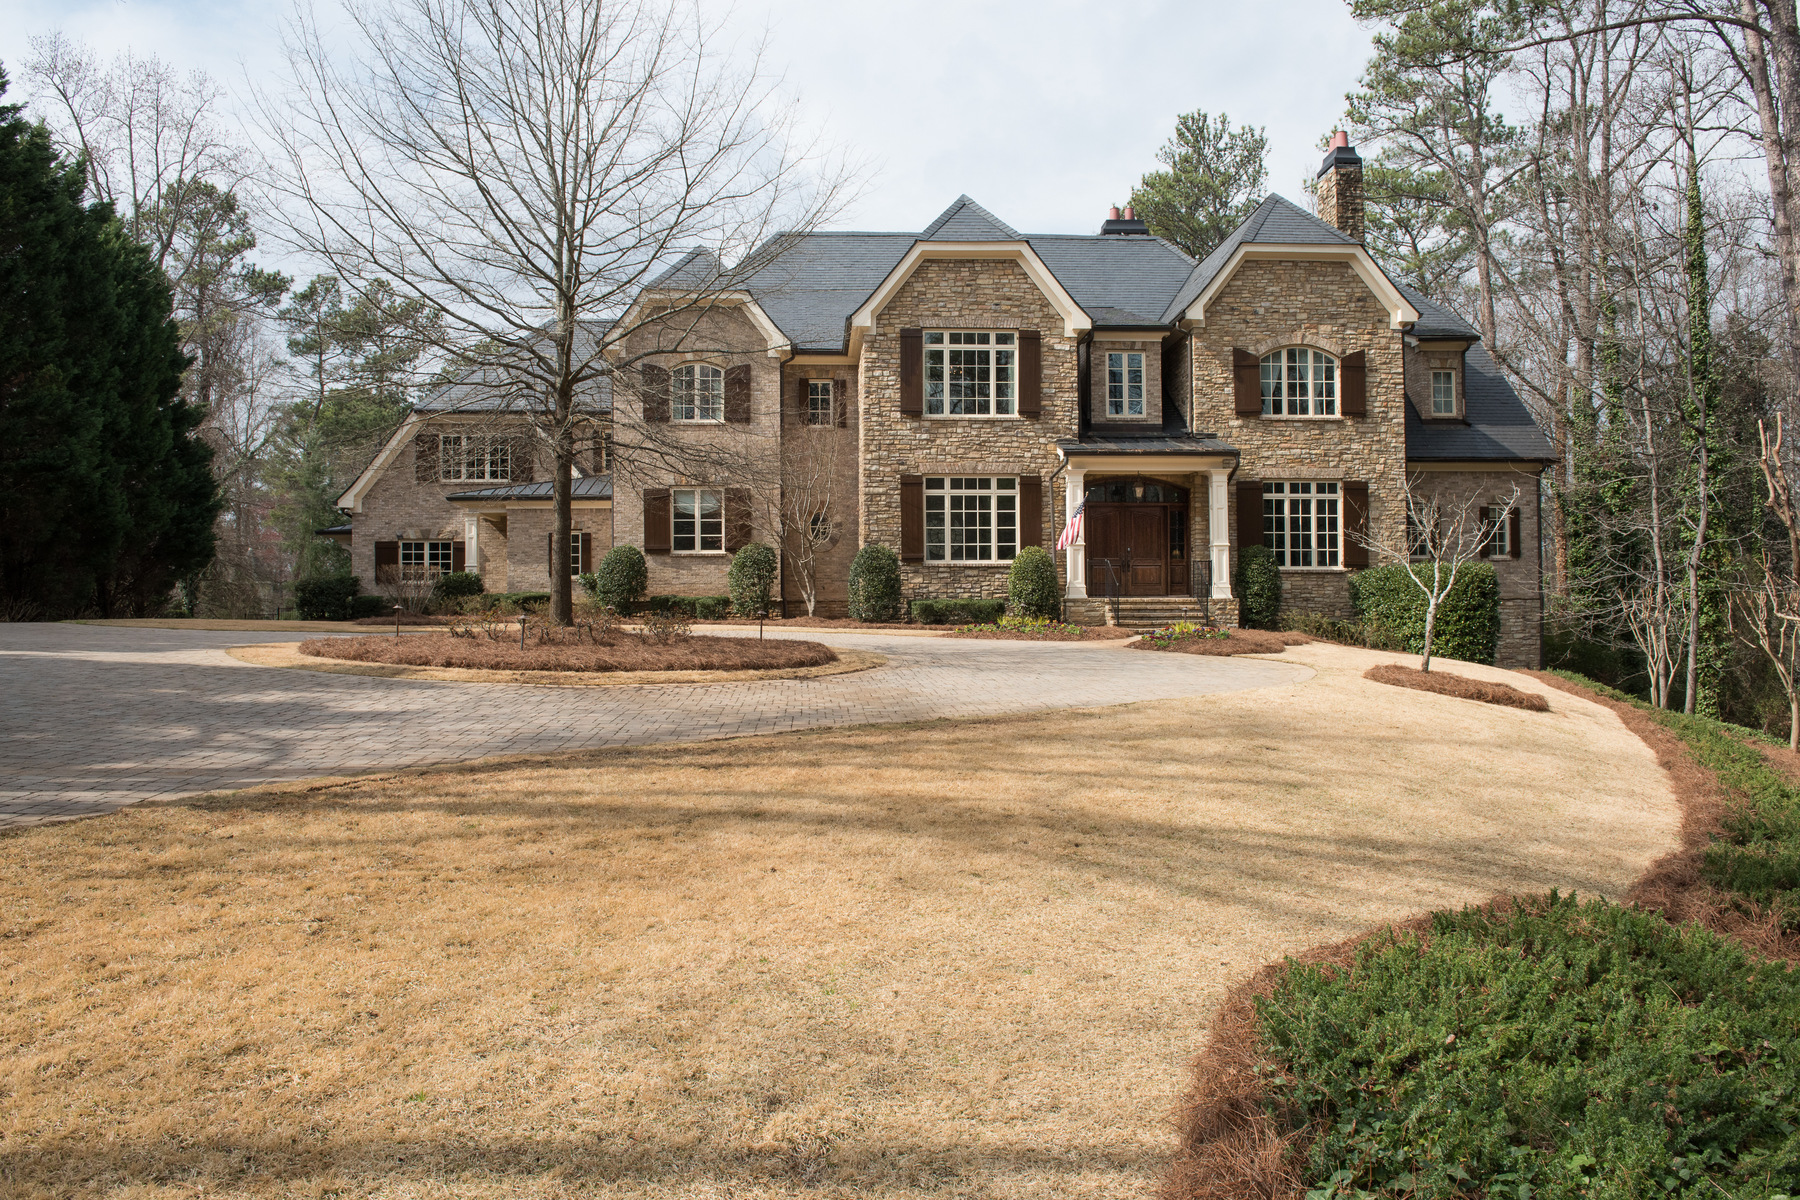 Maison unifamiliale pour l Vente à Exceptional Gated Estate Nestles on Two Acres in Prime Sandy Springs Location 5220 Northside Drive NW Atlanta, Georgia, 30327 États-Unis